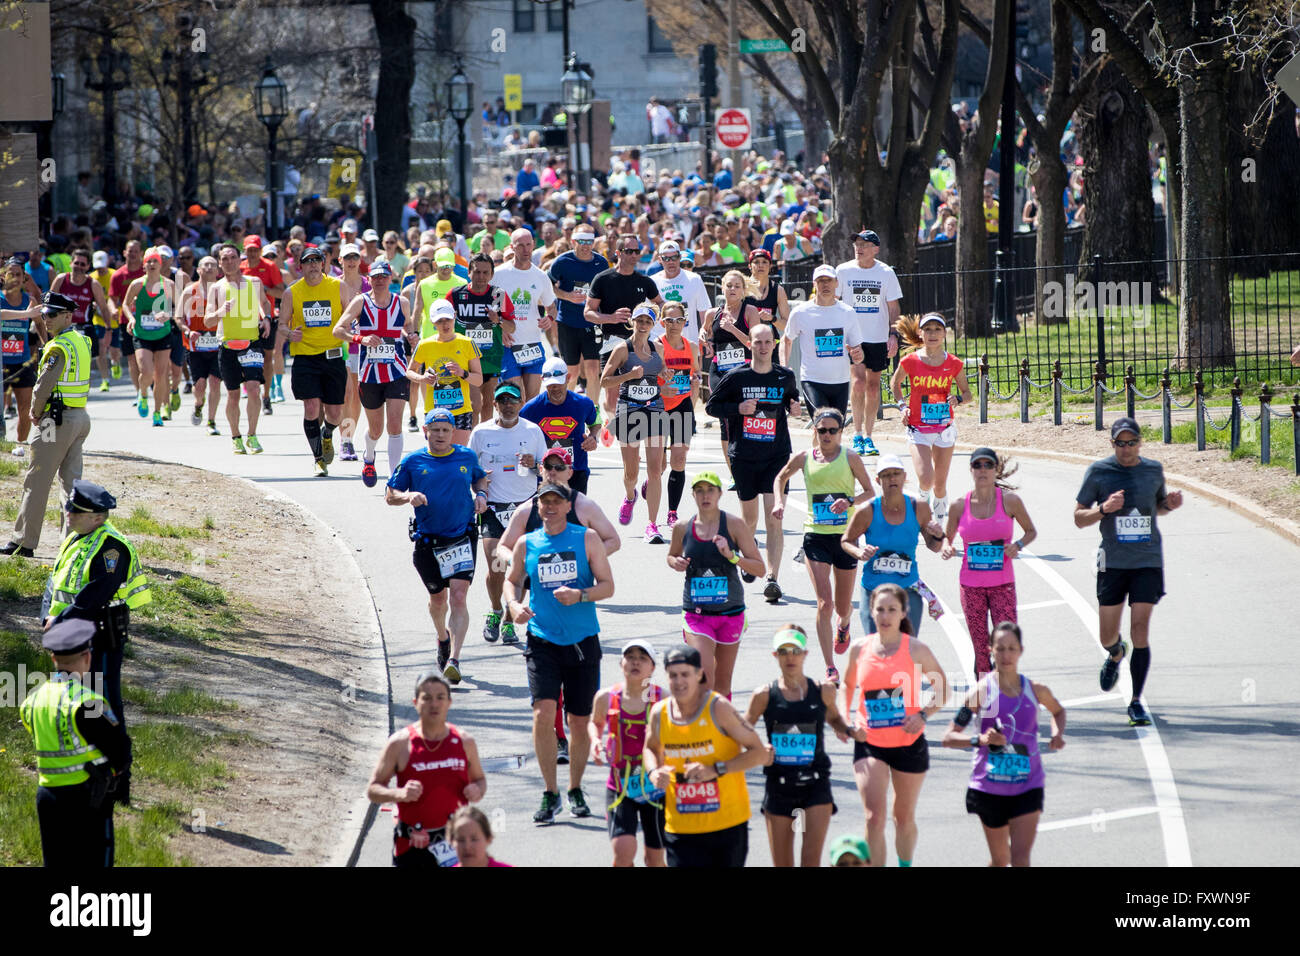 Boston, MA, USA. 18th April, 2016. Over 30,000 participants take part in the 2016 Boston Marathon. This year marks - Stock Image